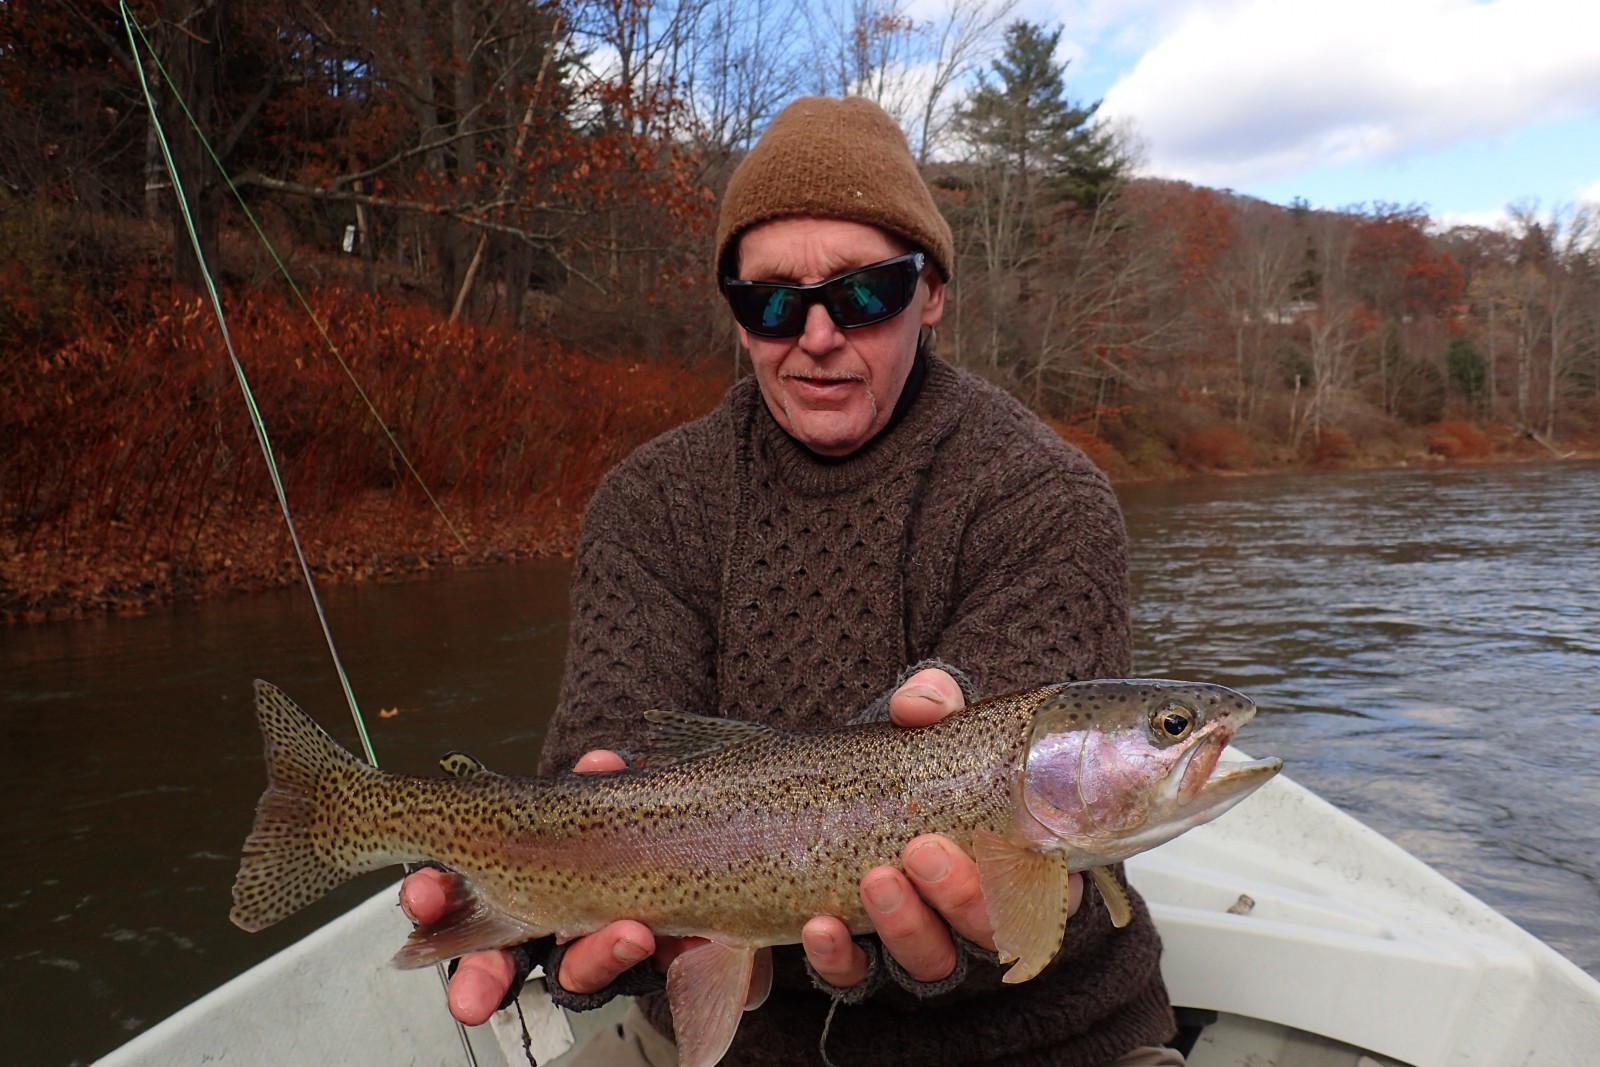 fly fishing the main stem delaware river and west branch delaware river with guide jesse filingo of filingo fly fishing